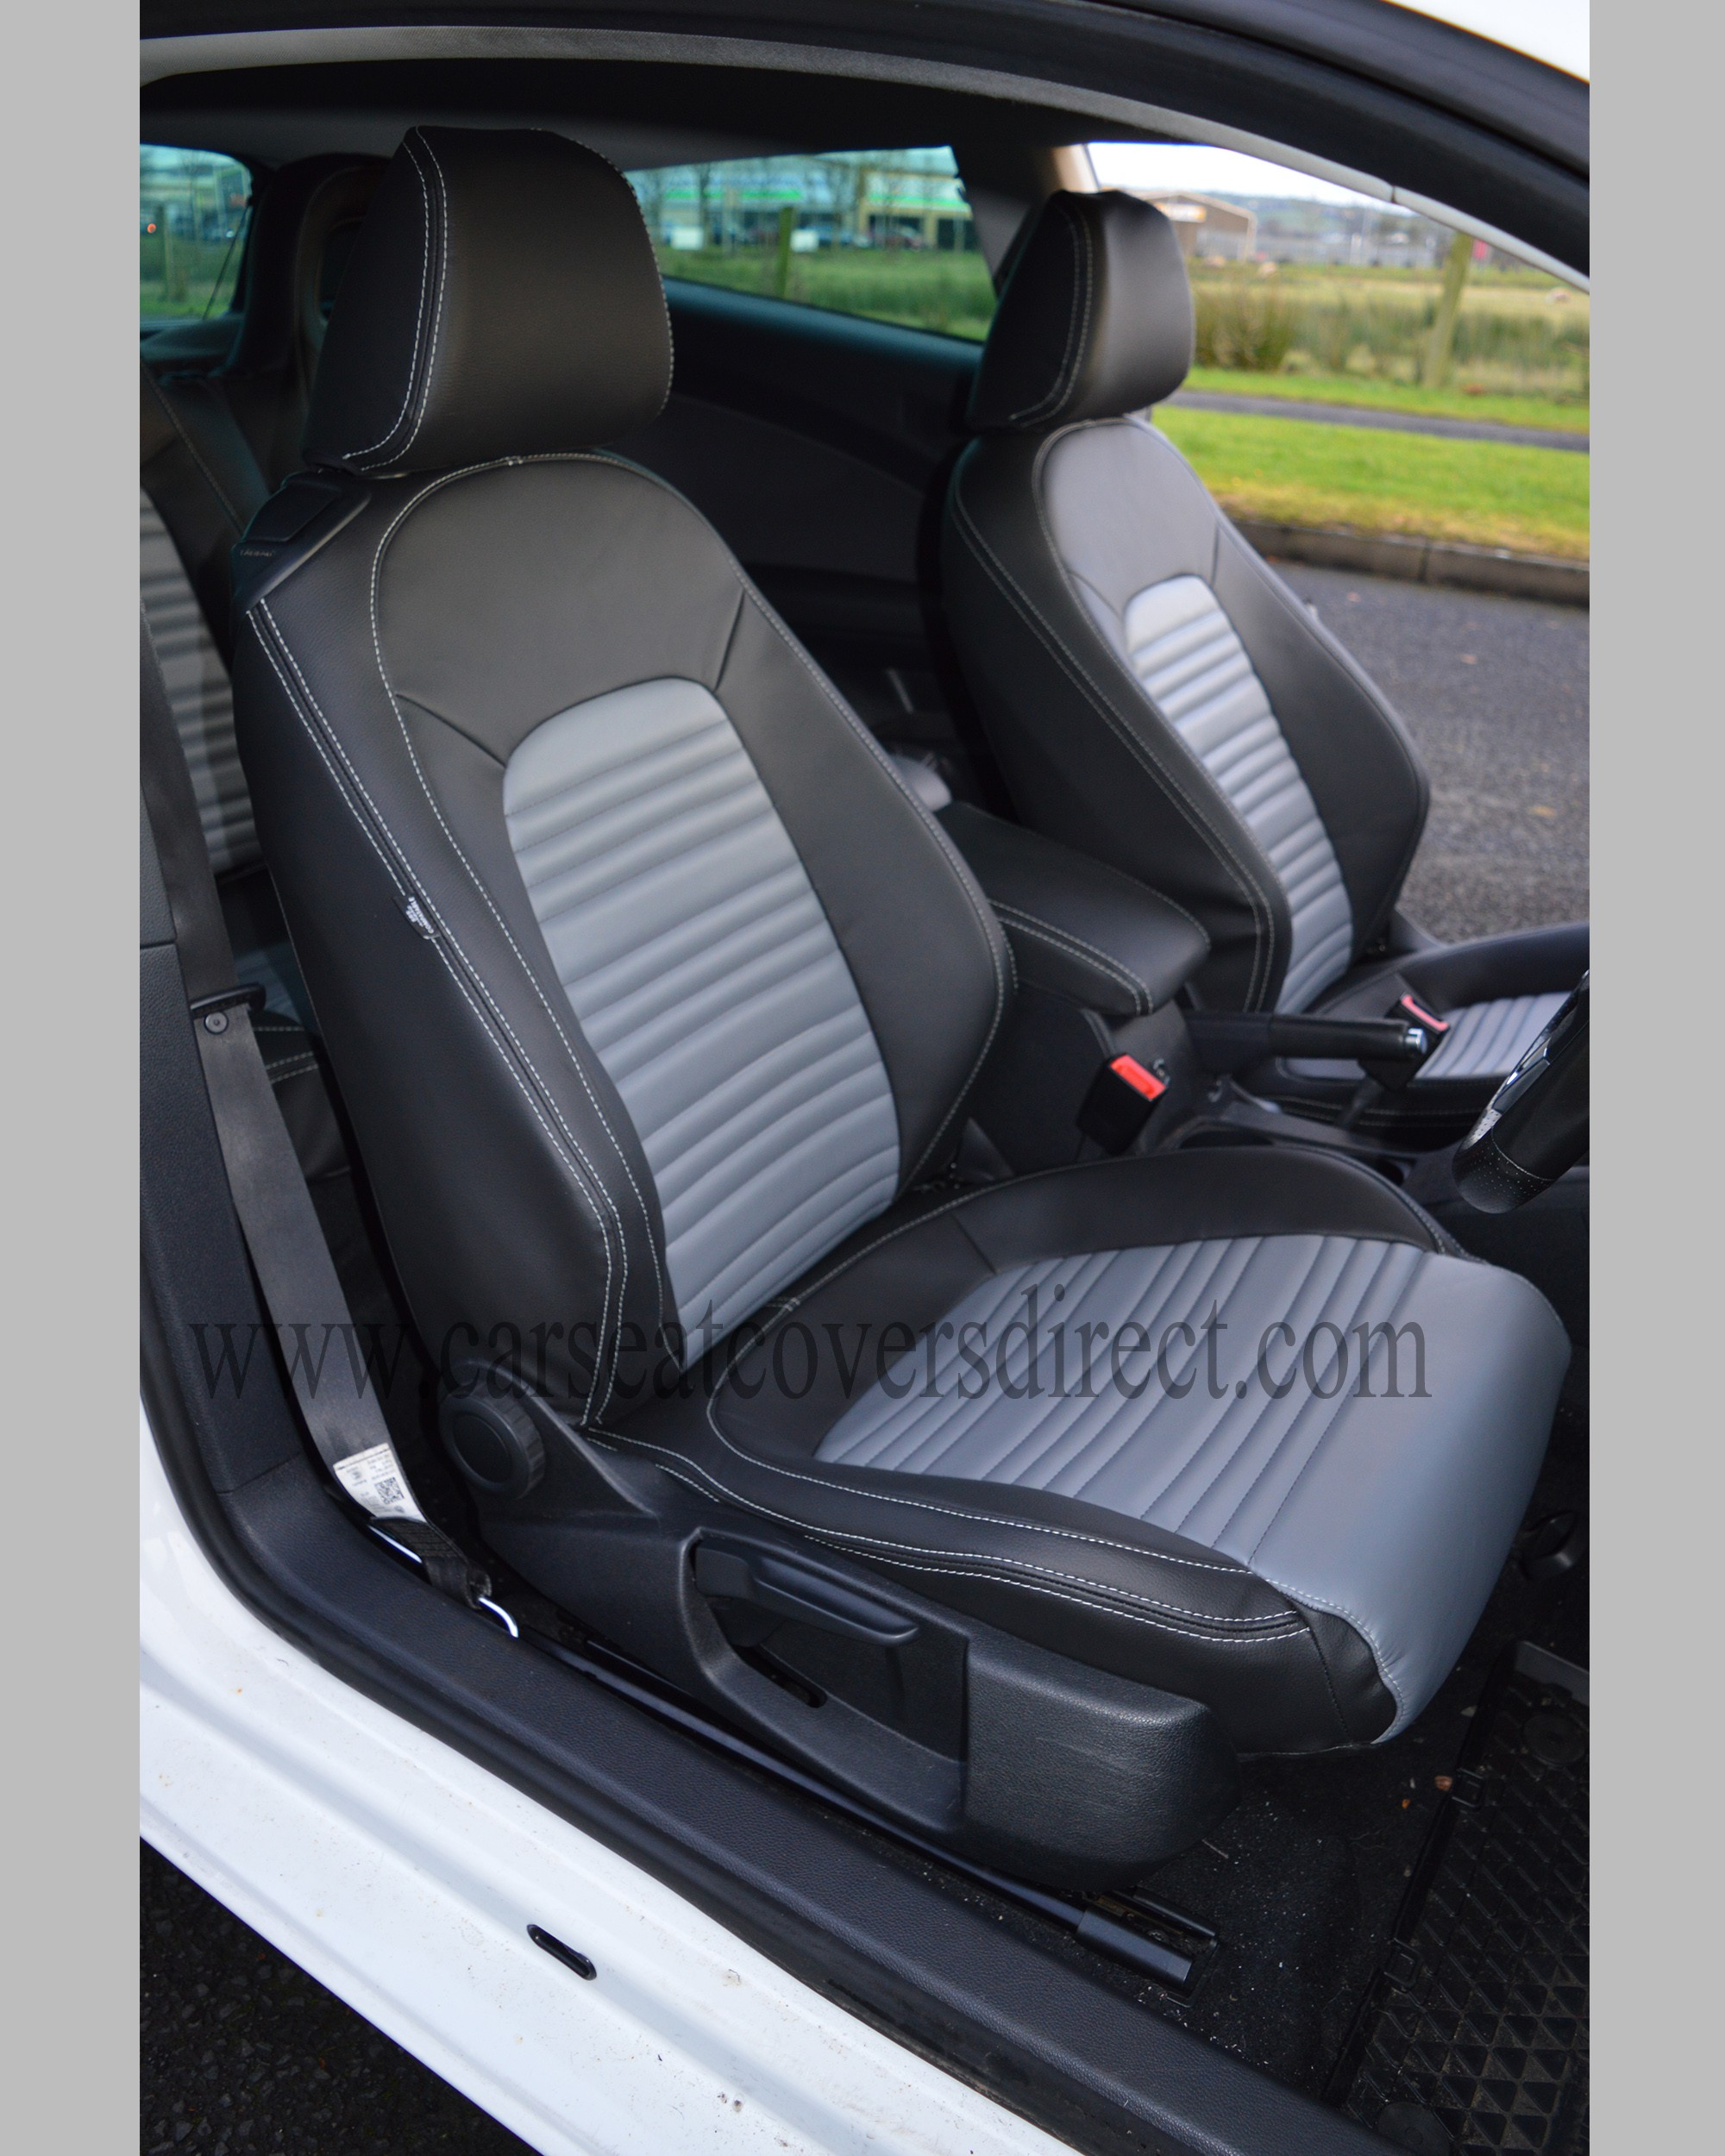 Volkswagen VW Scirocco Seat Covers - Black with Grey Centres